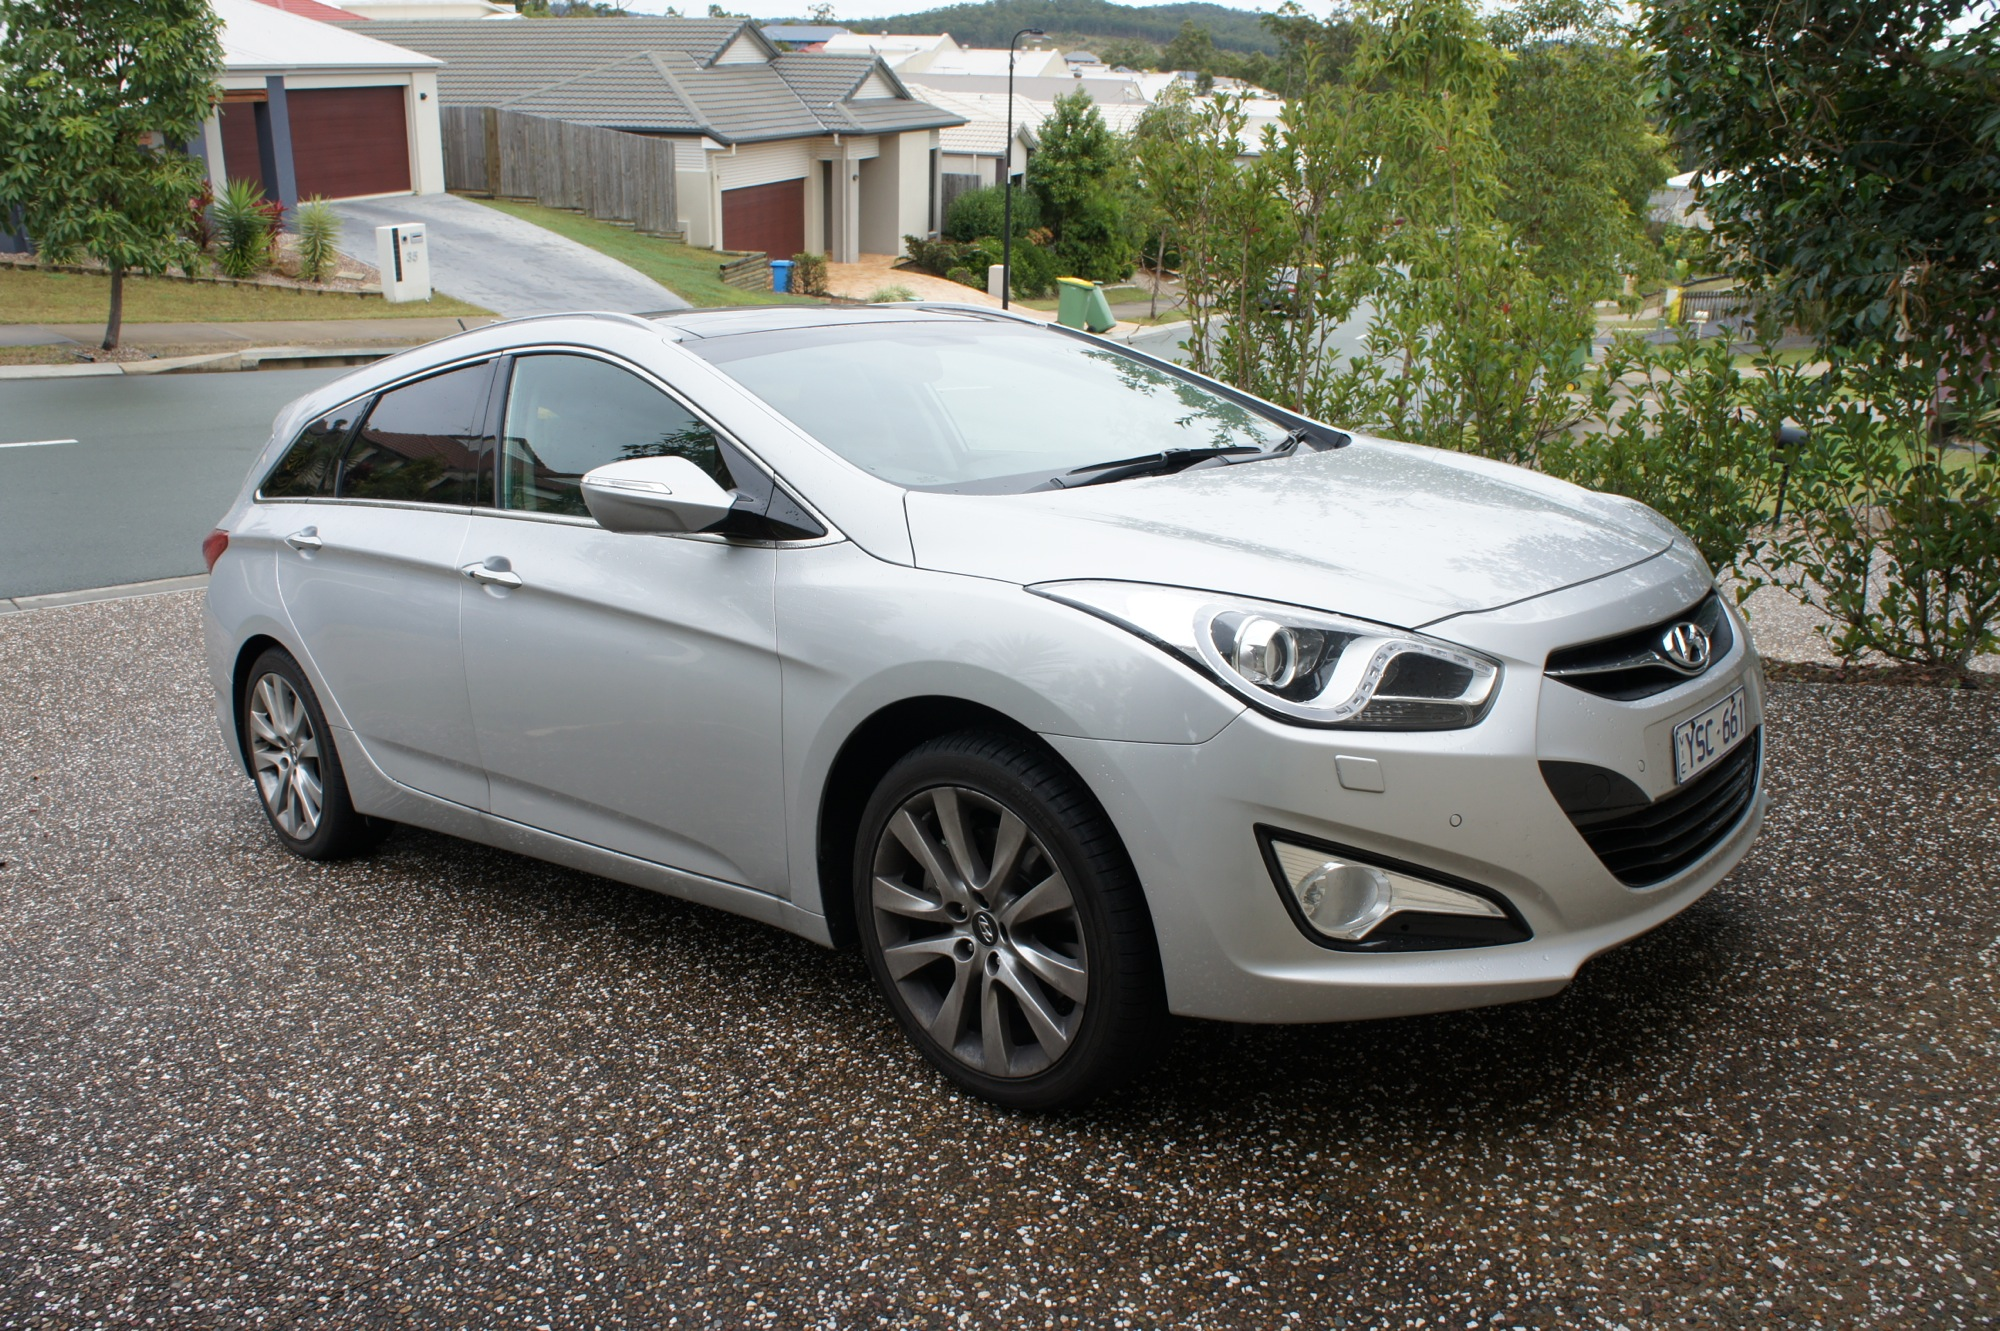 hyundai i40 review long term report 3 caradvice. Black Bedroom Furniture Sets. Home Design Ideas